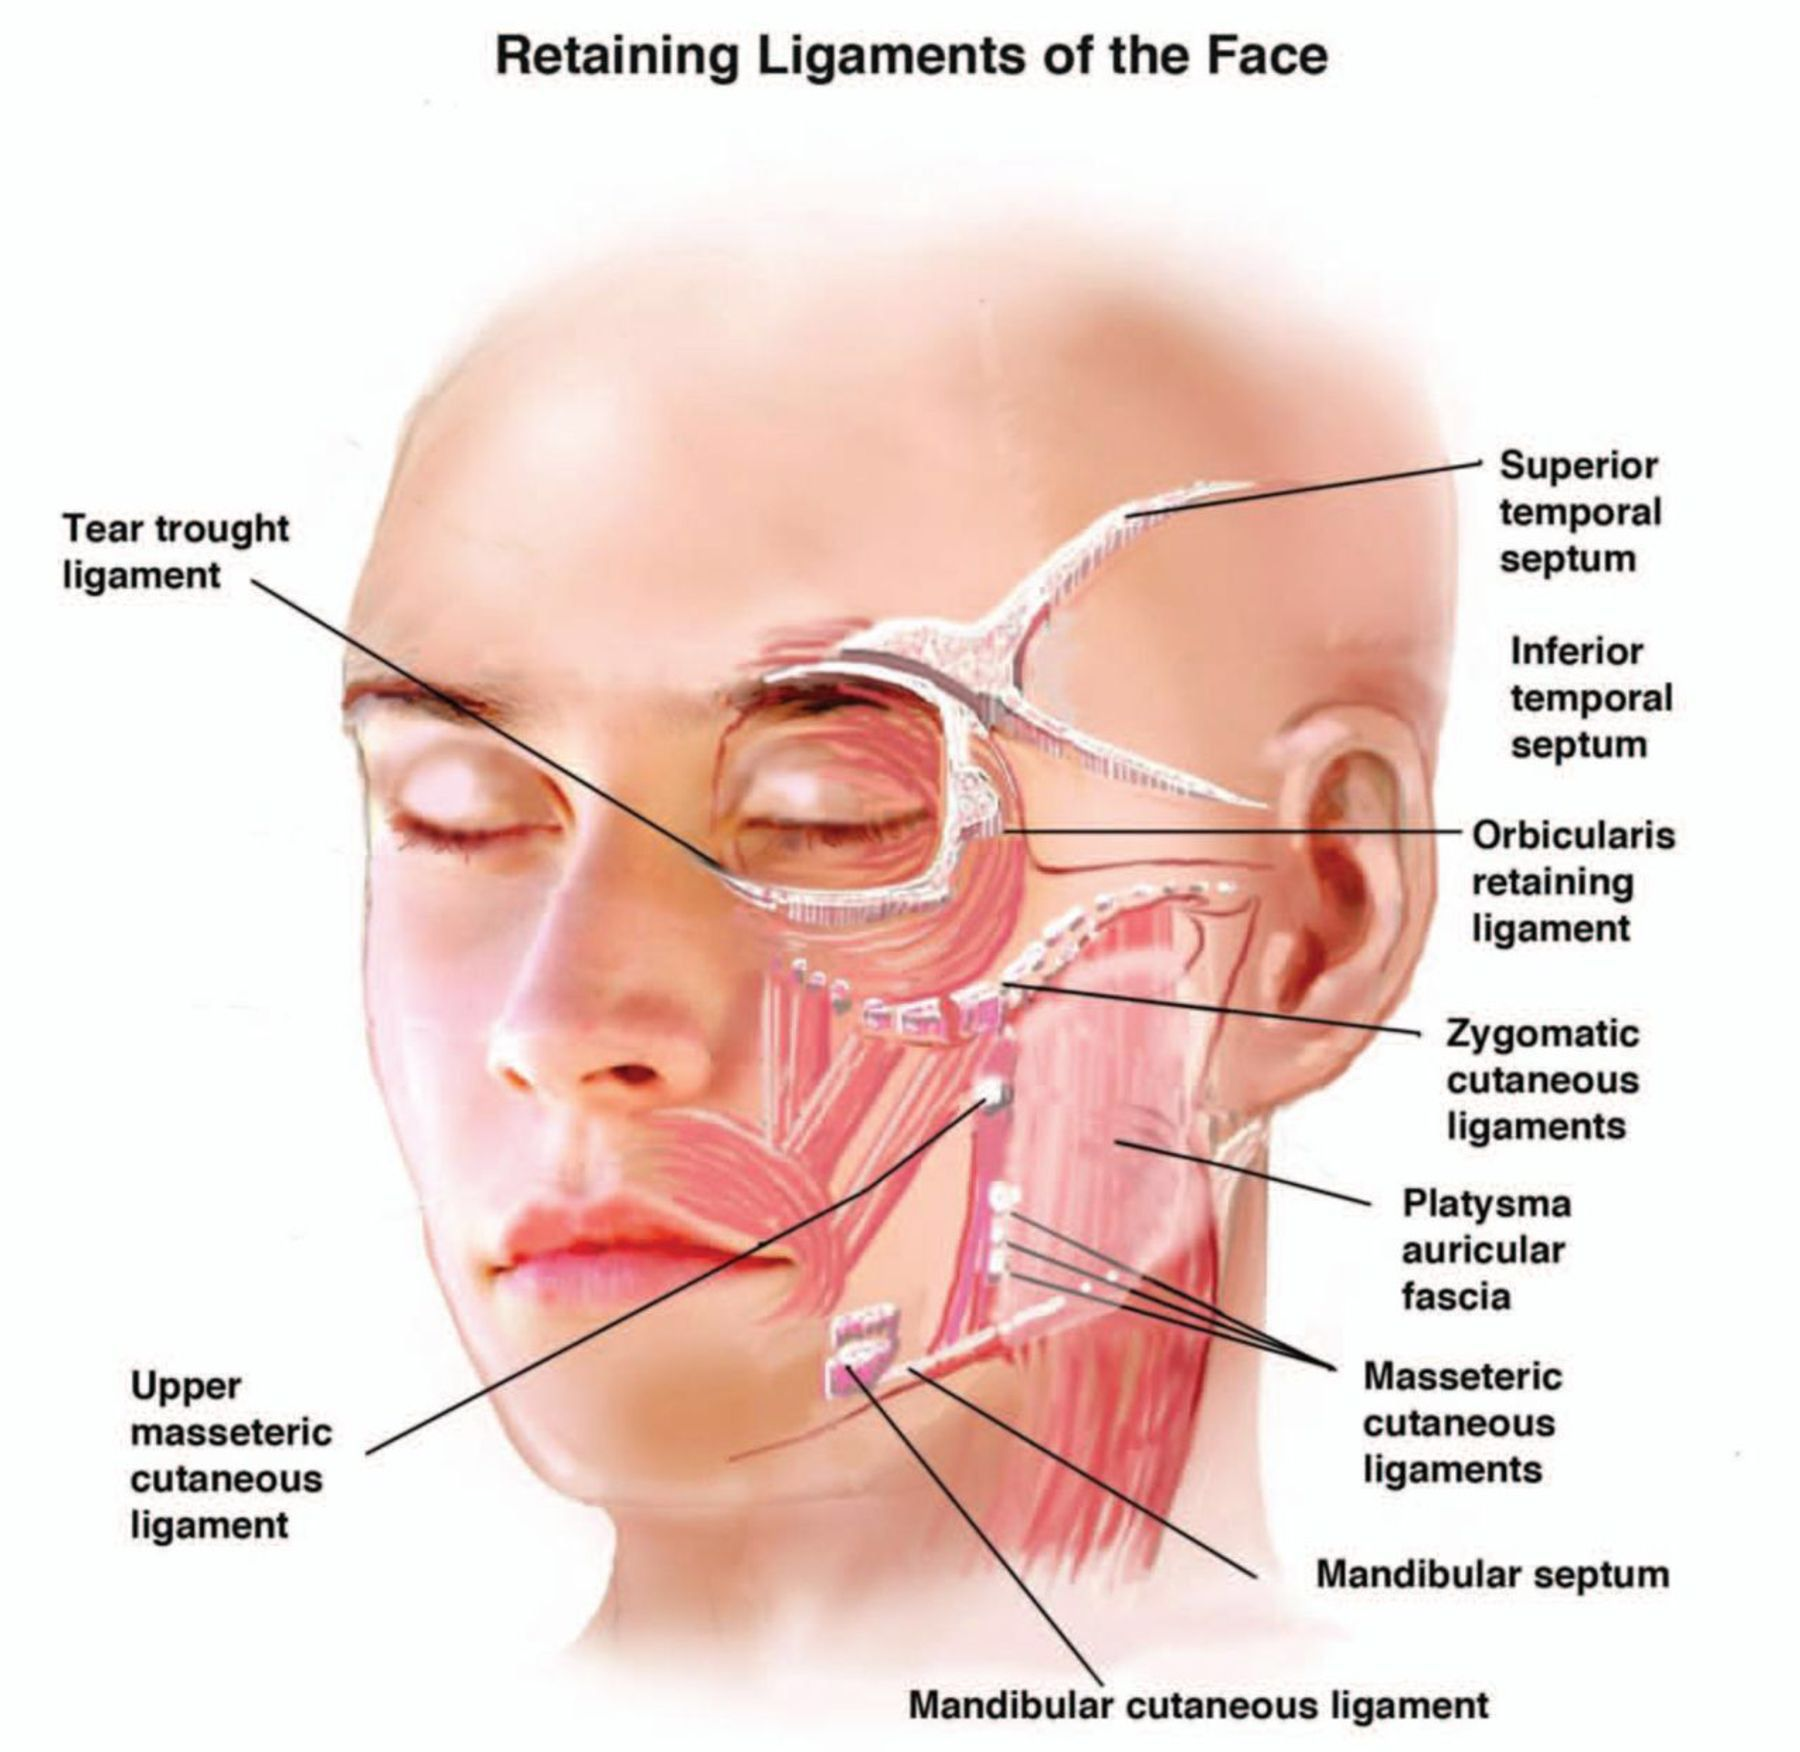 Retaining ligaments of the face | Facial Anatomy | Pinterest | Face ...